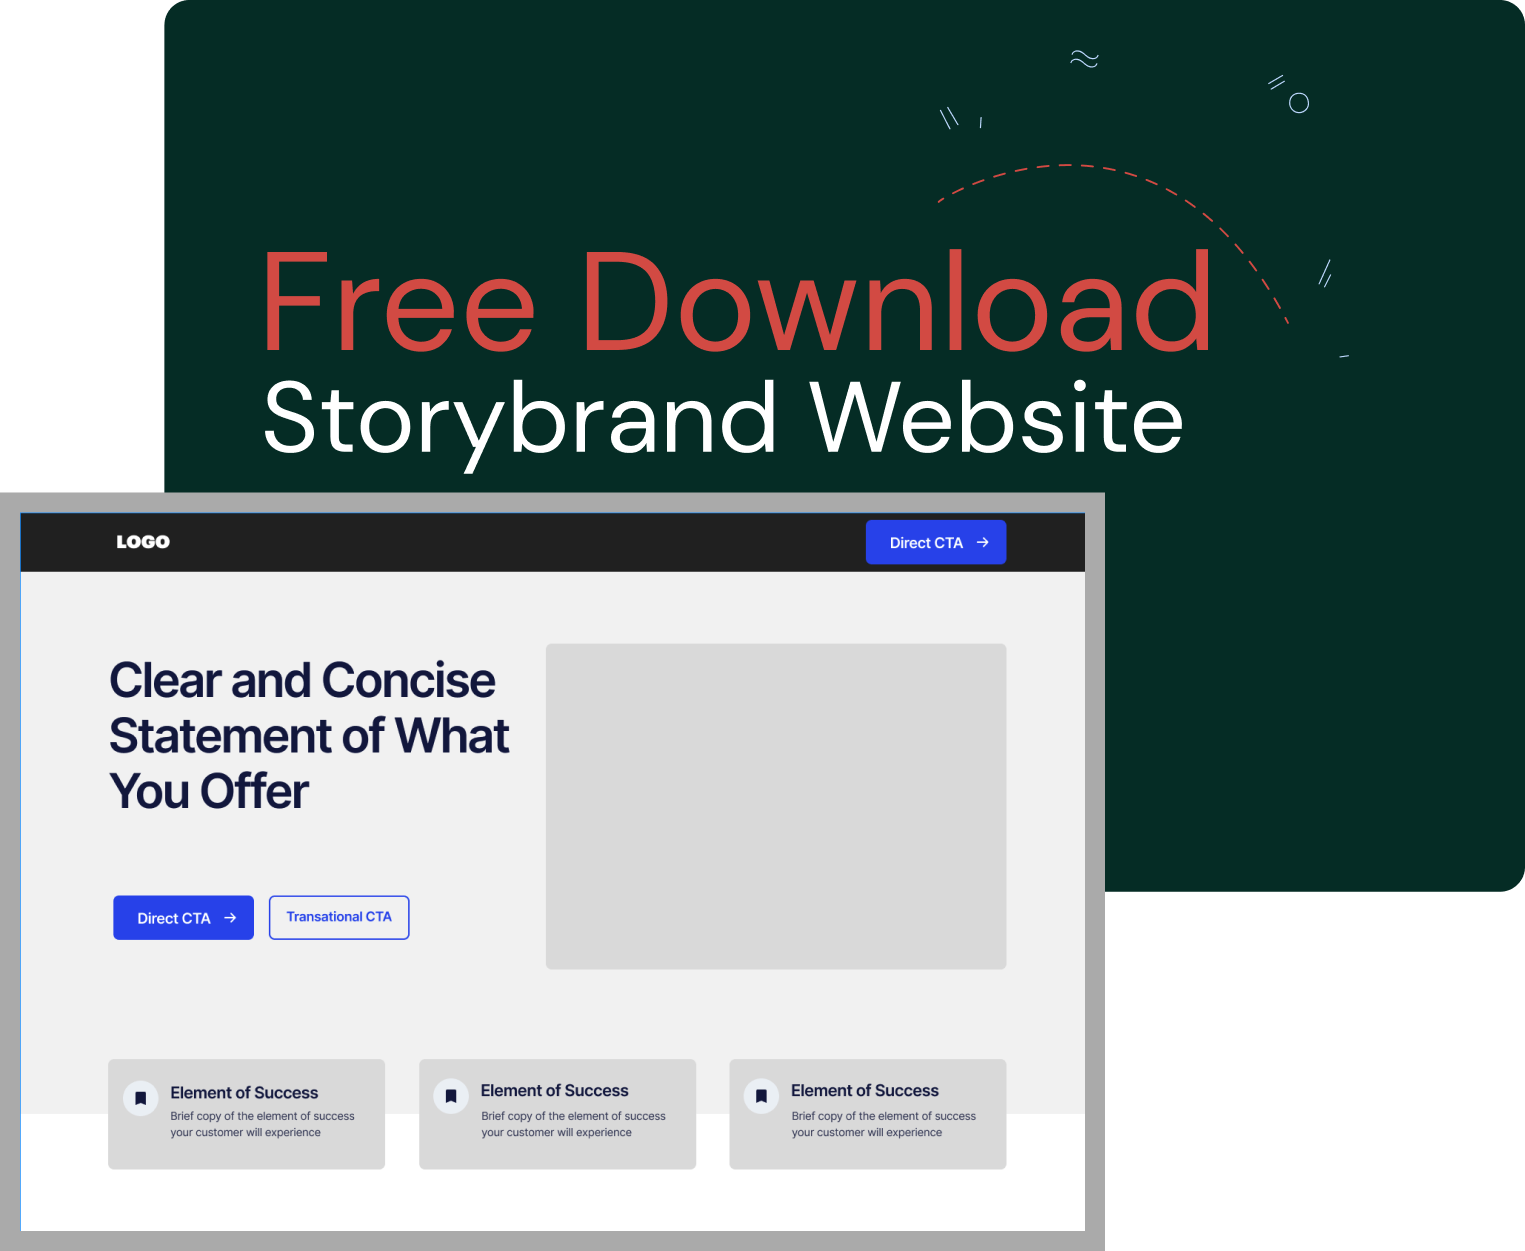 Storybrand website wireframe for download